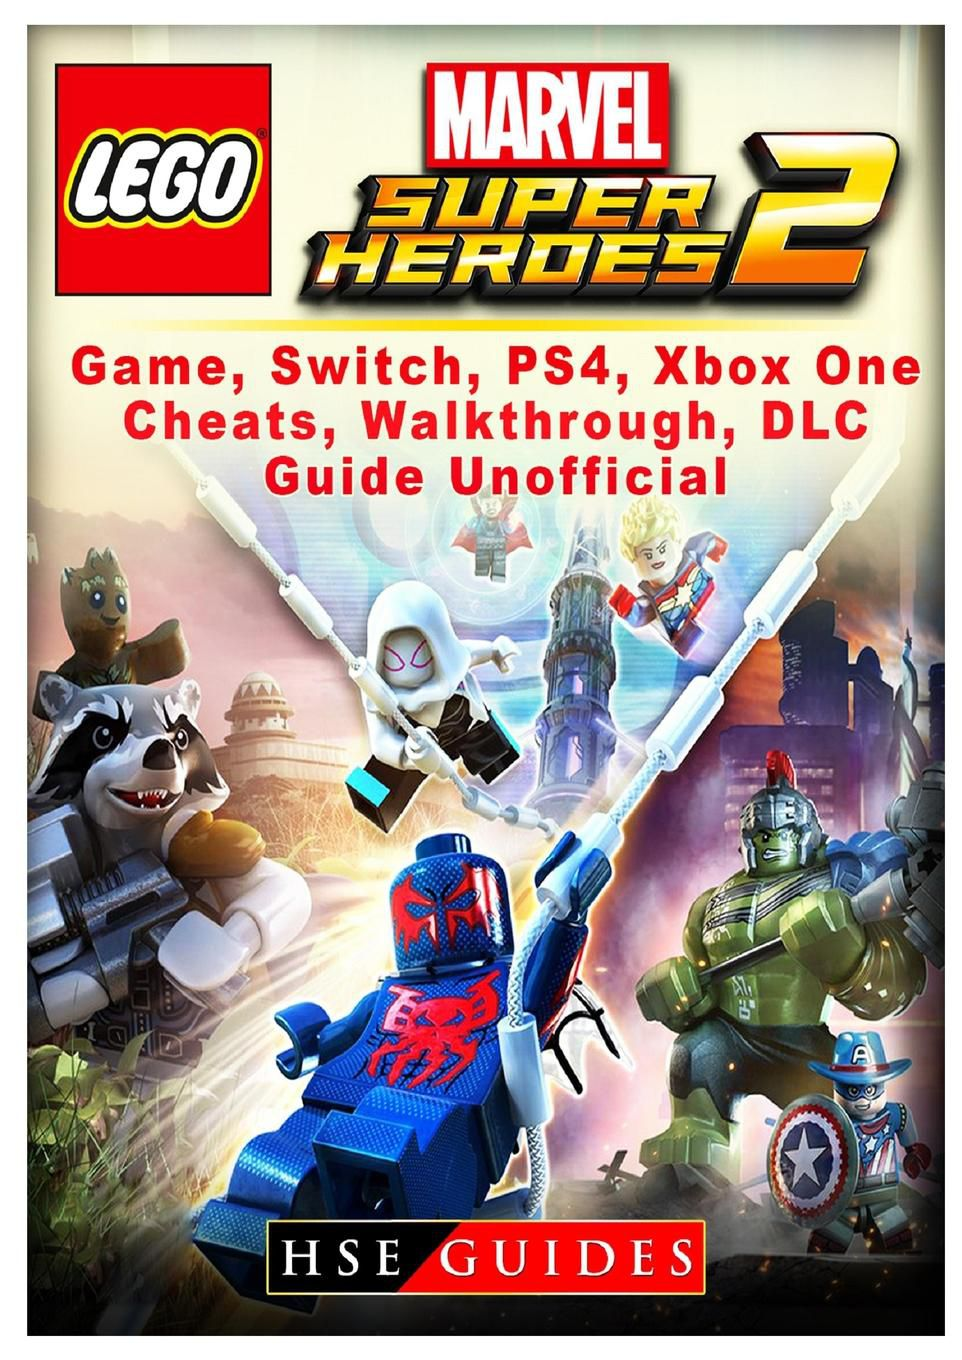 Lego Marvel Super Heroes 2 Game Switch Ps4 Xb One Cheats